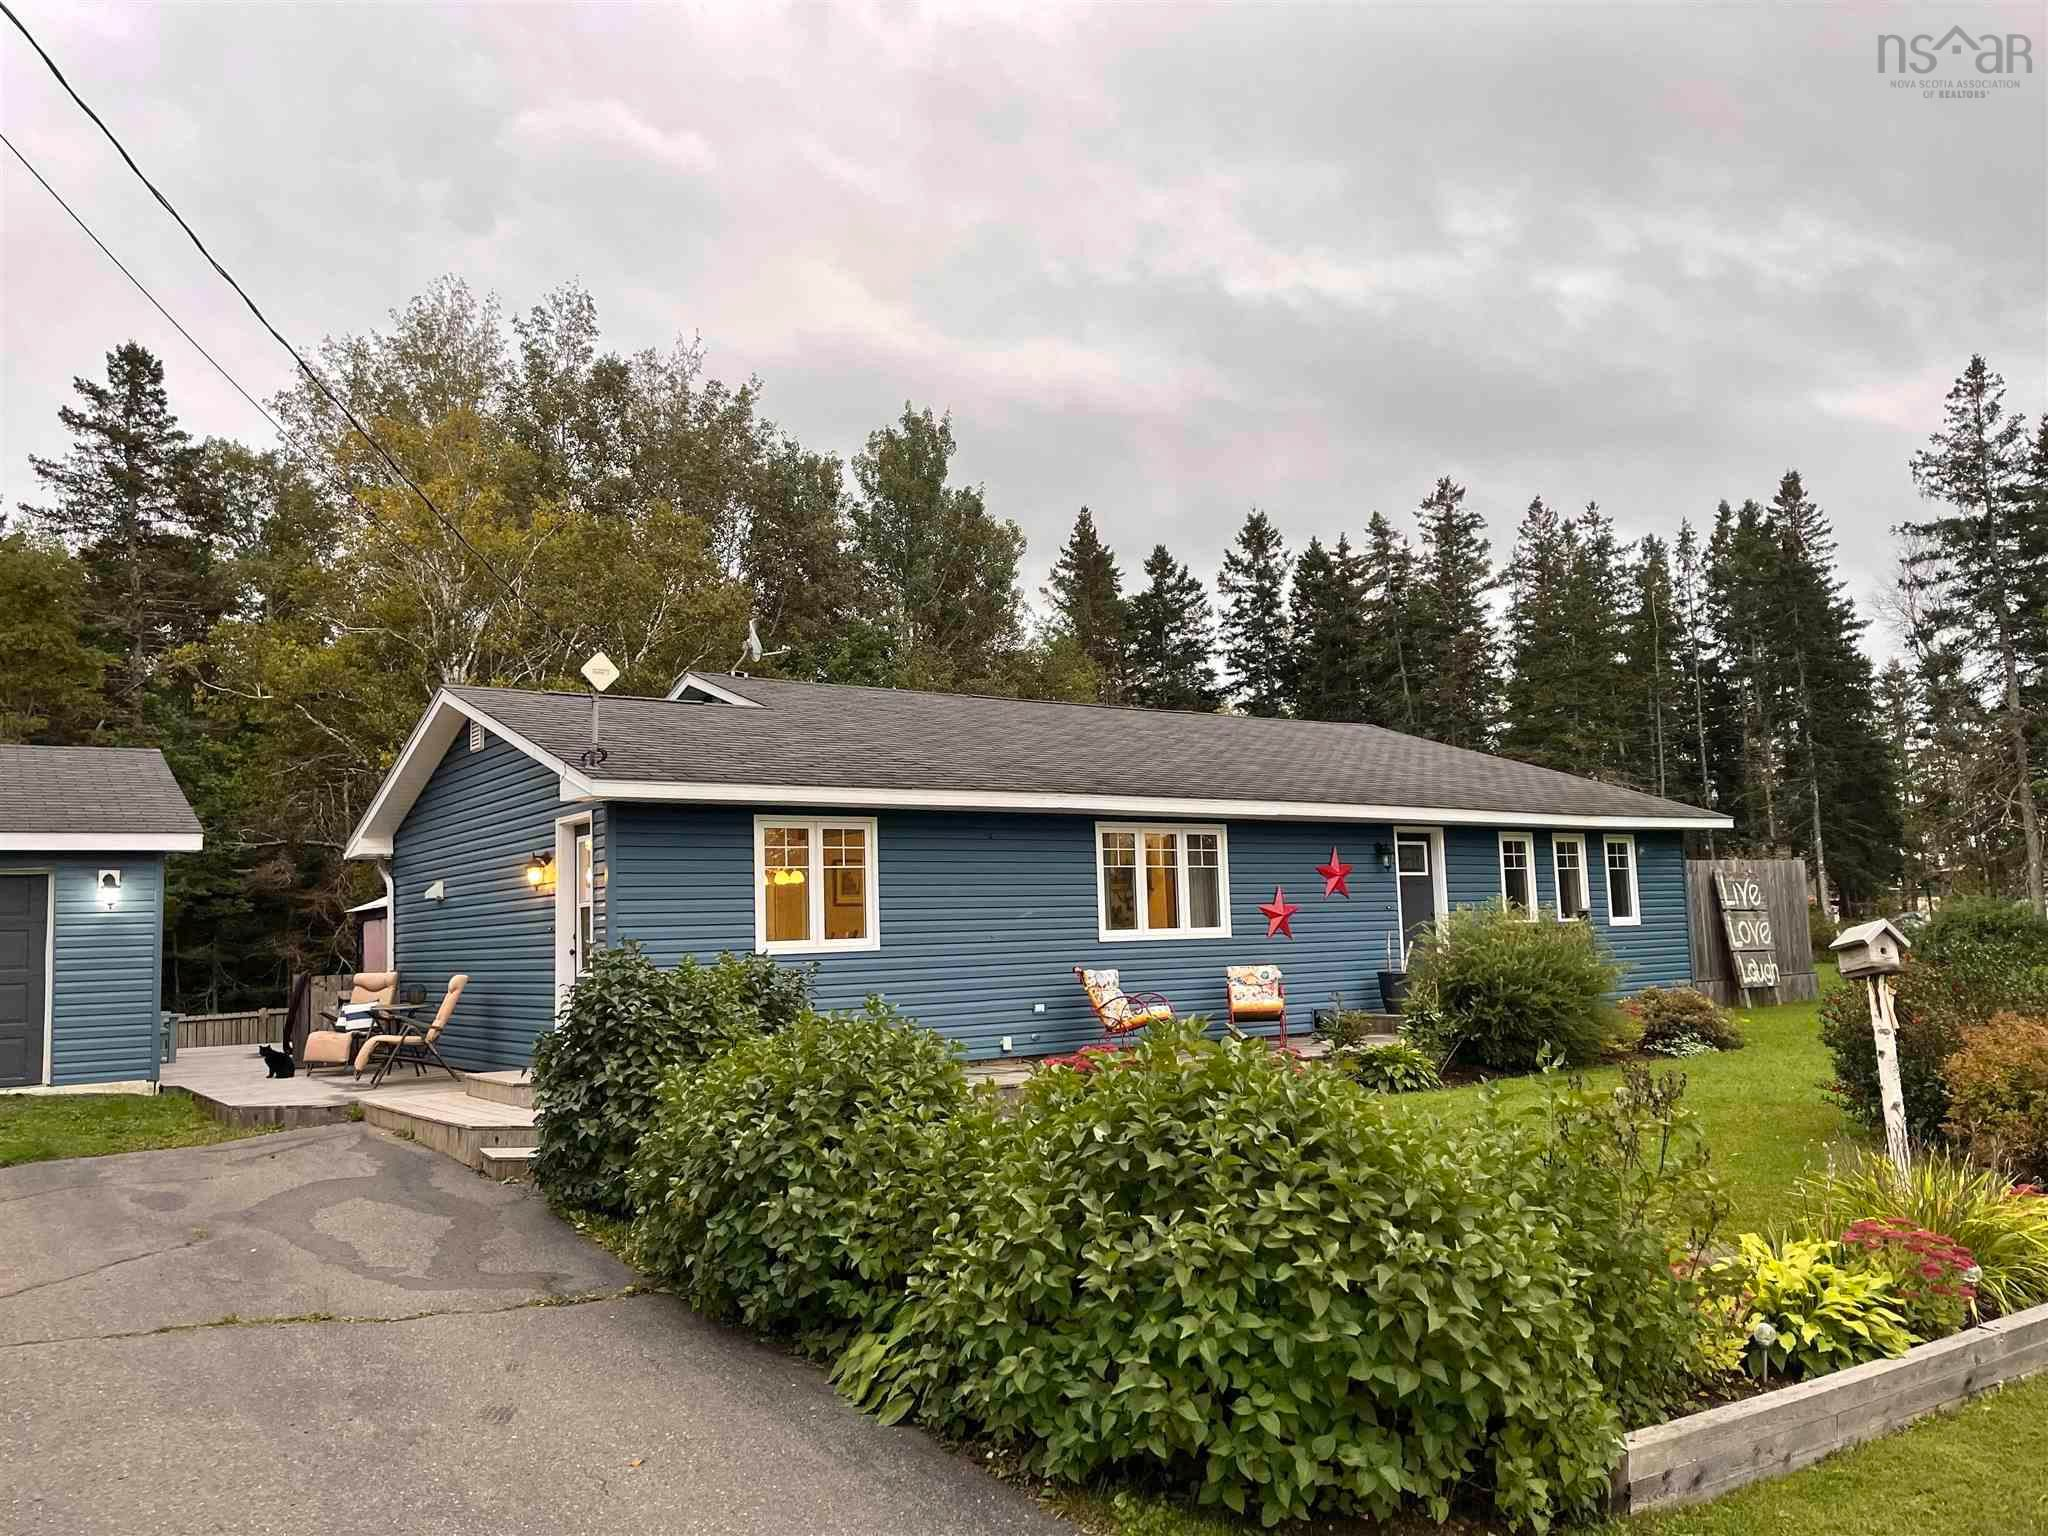 Main Photo: 2416 Millsville Road in Millsville: 108-Rural Pictou County Residential for sale (Northern Region)  : MLS®# 202124847